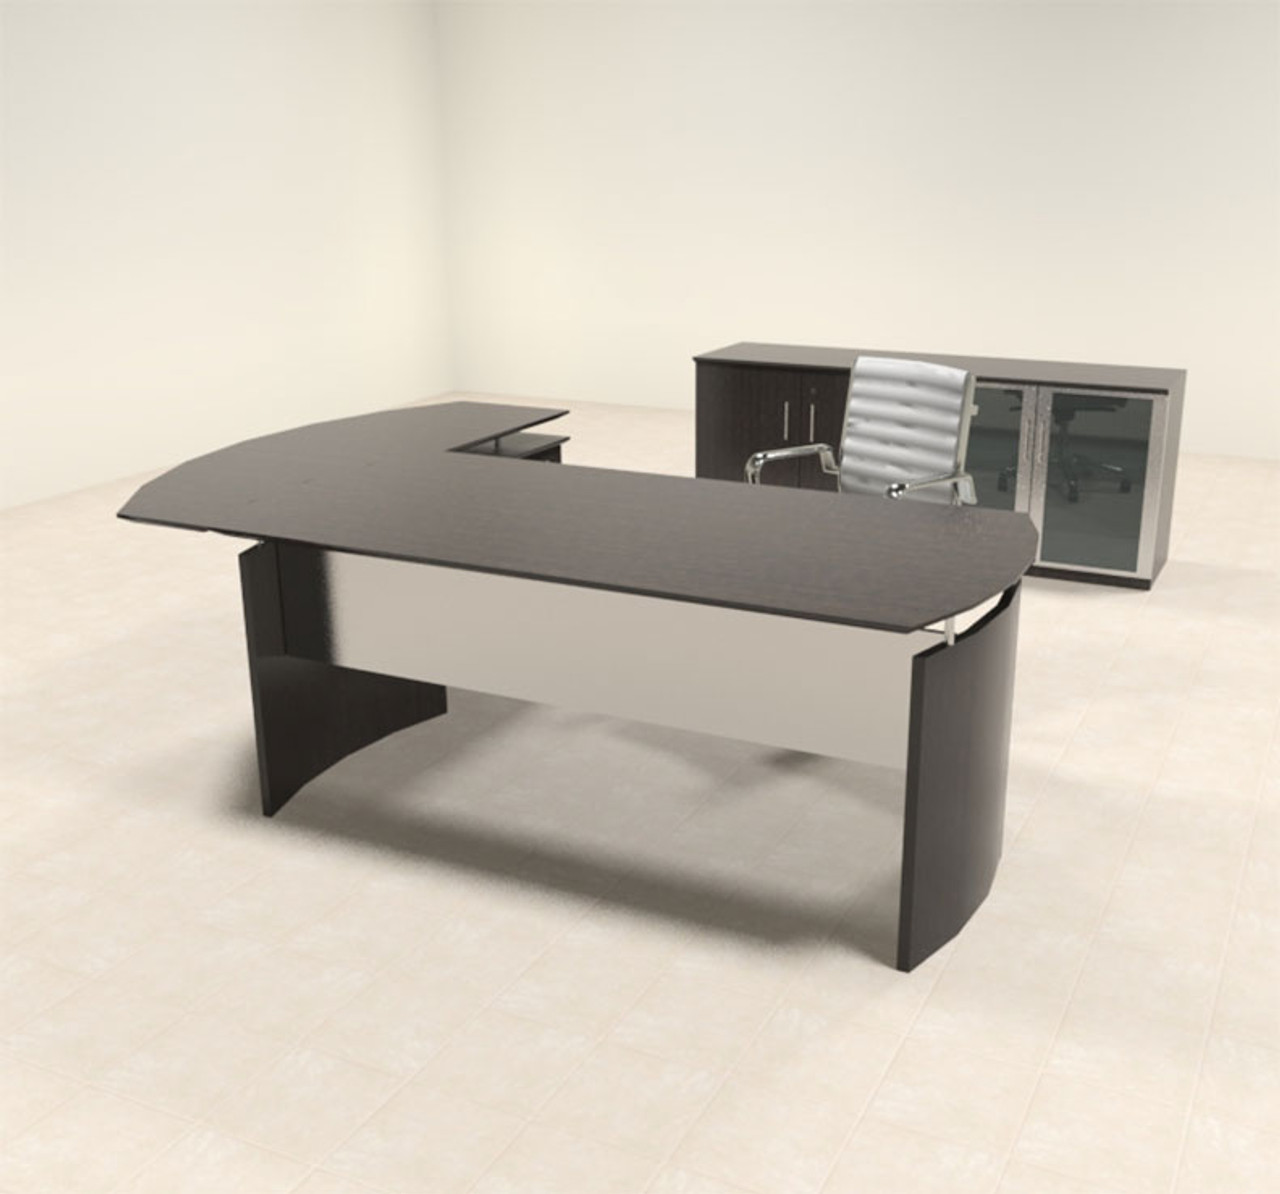 3pc Modern Contemporary L Shaped Executive Office Desk Set, #MT-MED-O30